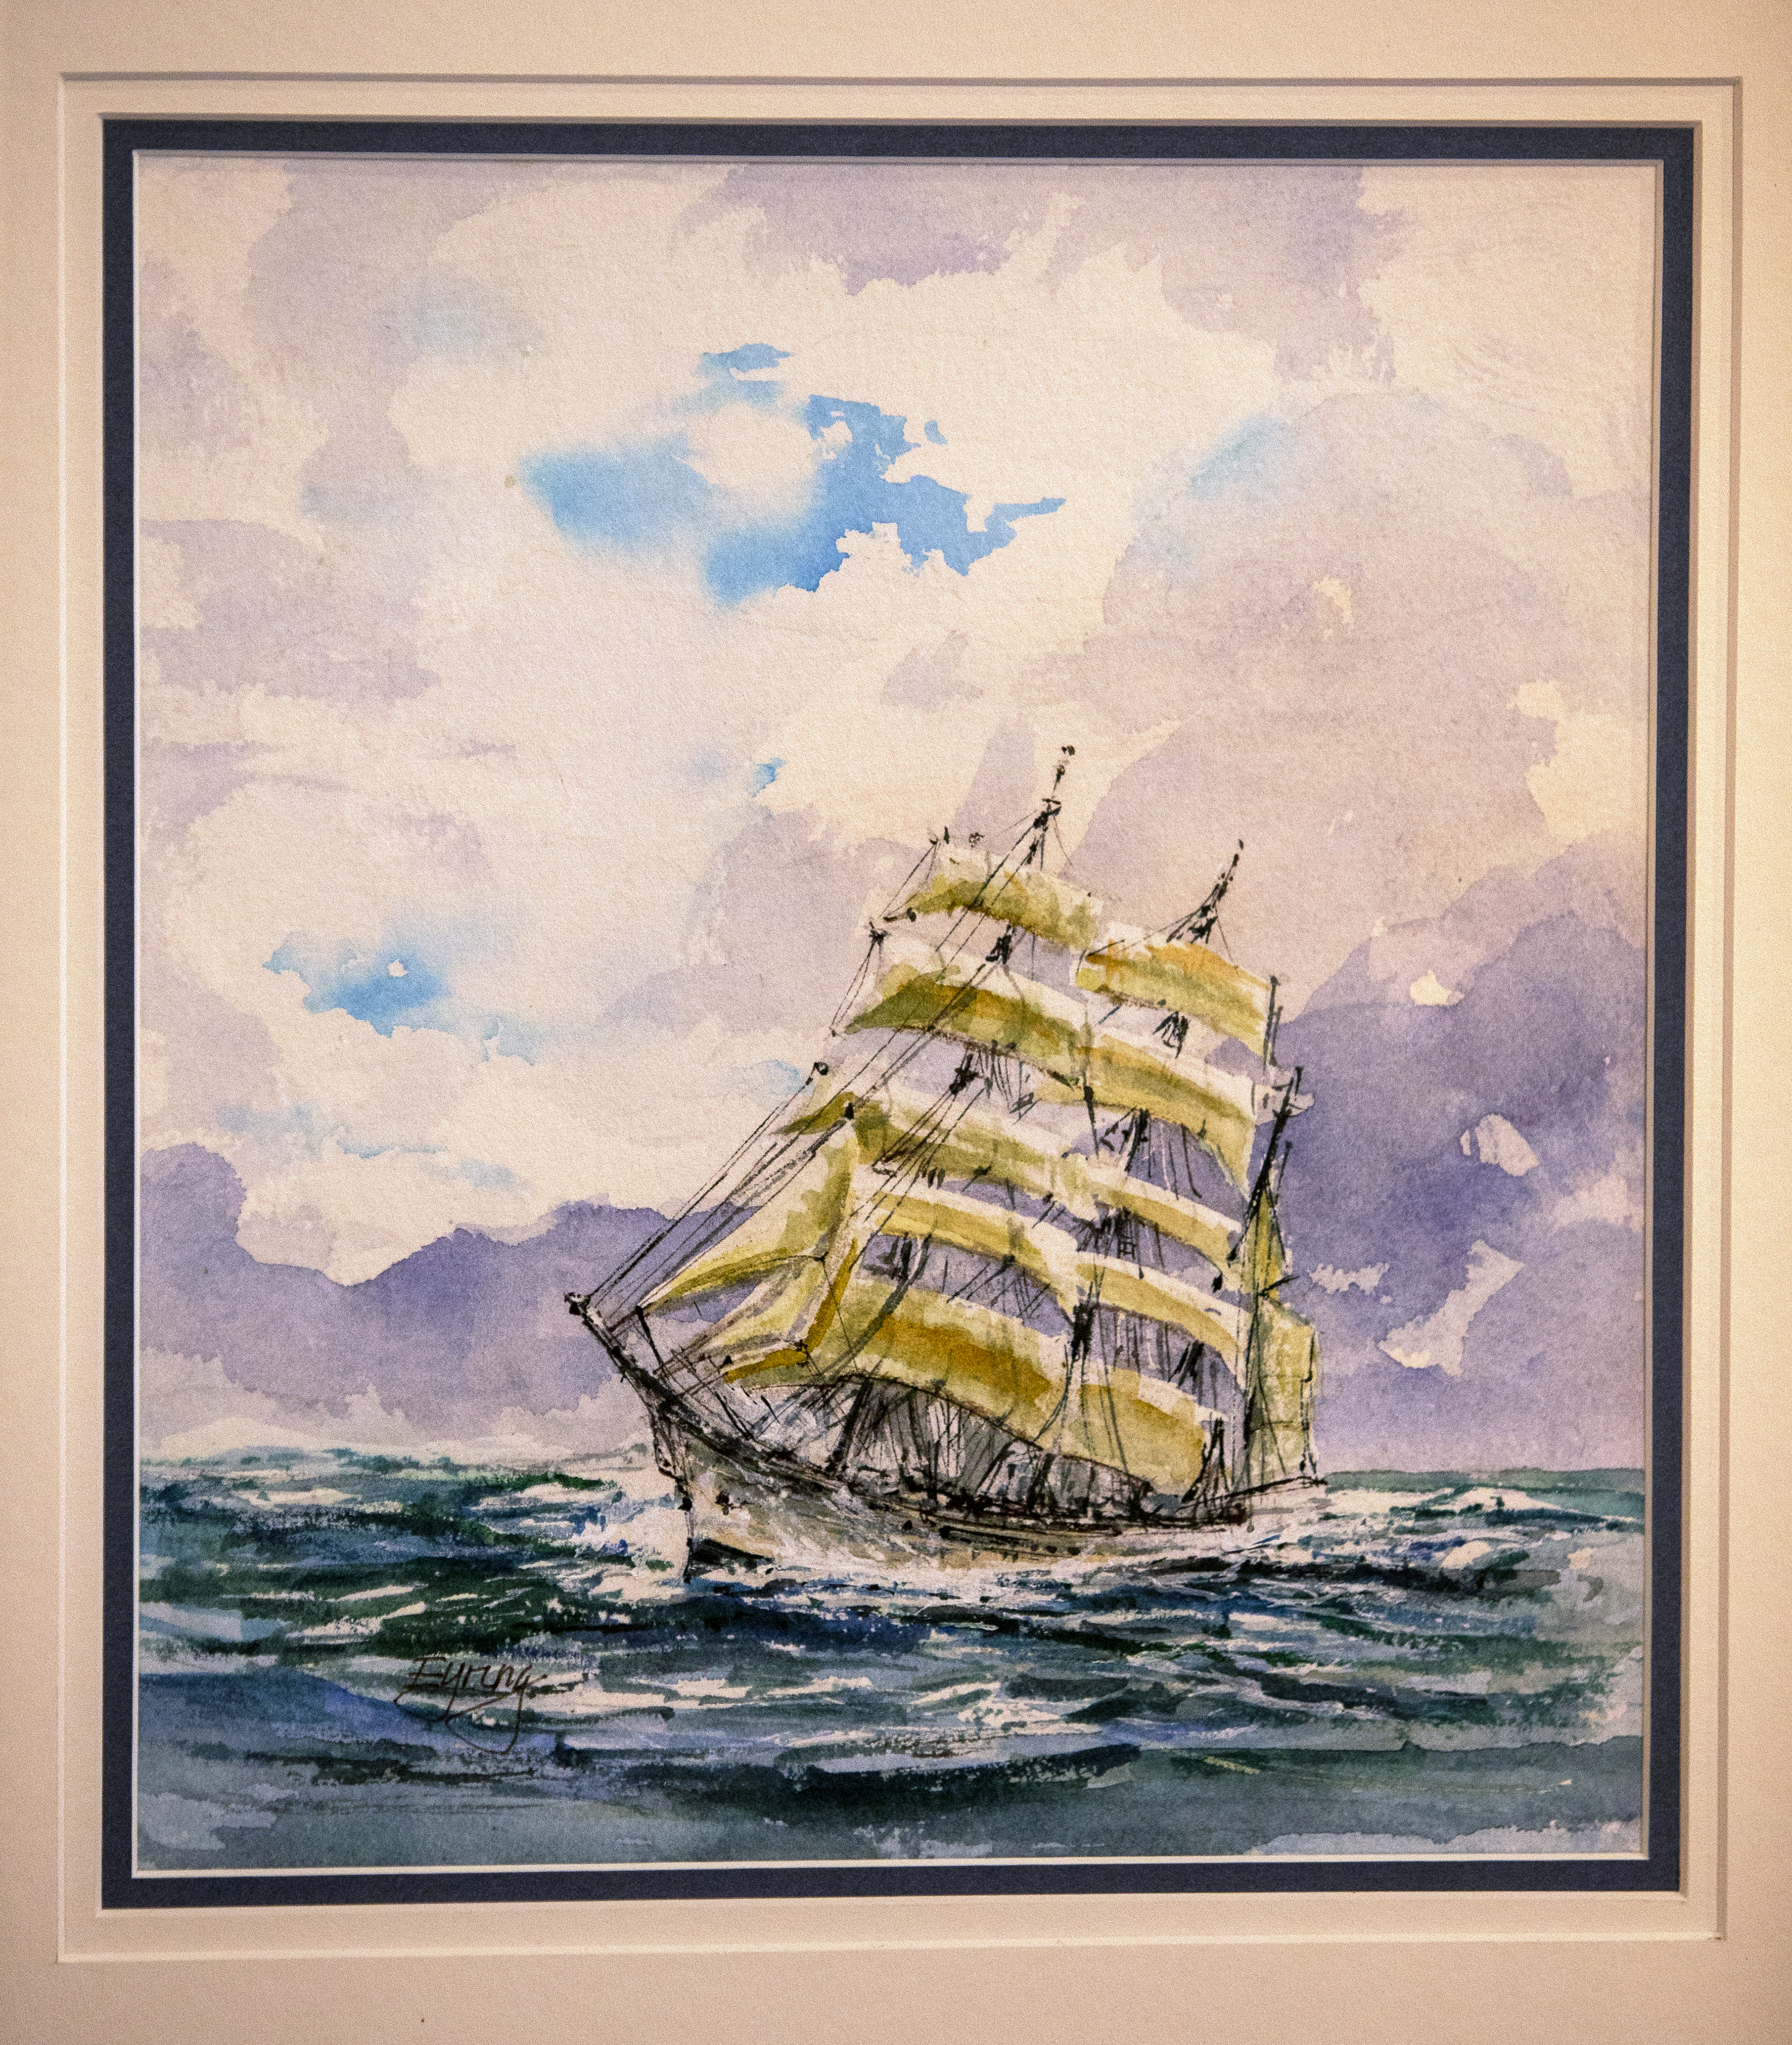 """The painting """"Bark Diana — Bremerhaven, Germany"""" by President Henry B. Eyring, is one of the paintings on display at a special exhibit in the Church History Museum in Salt Lake City."""